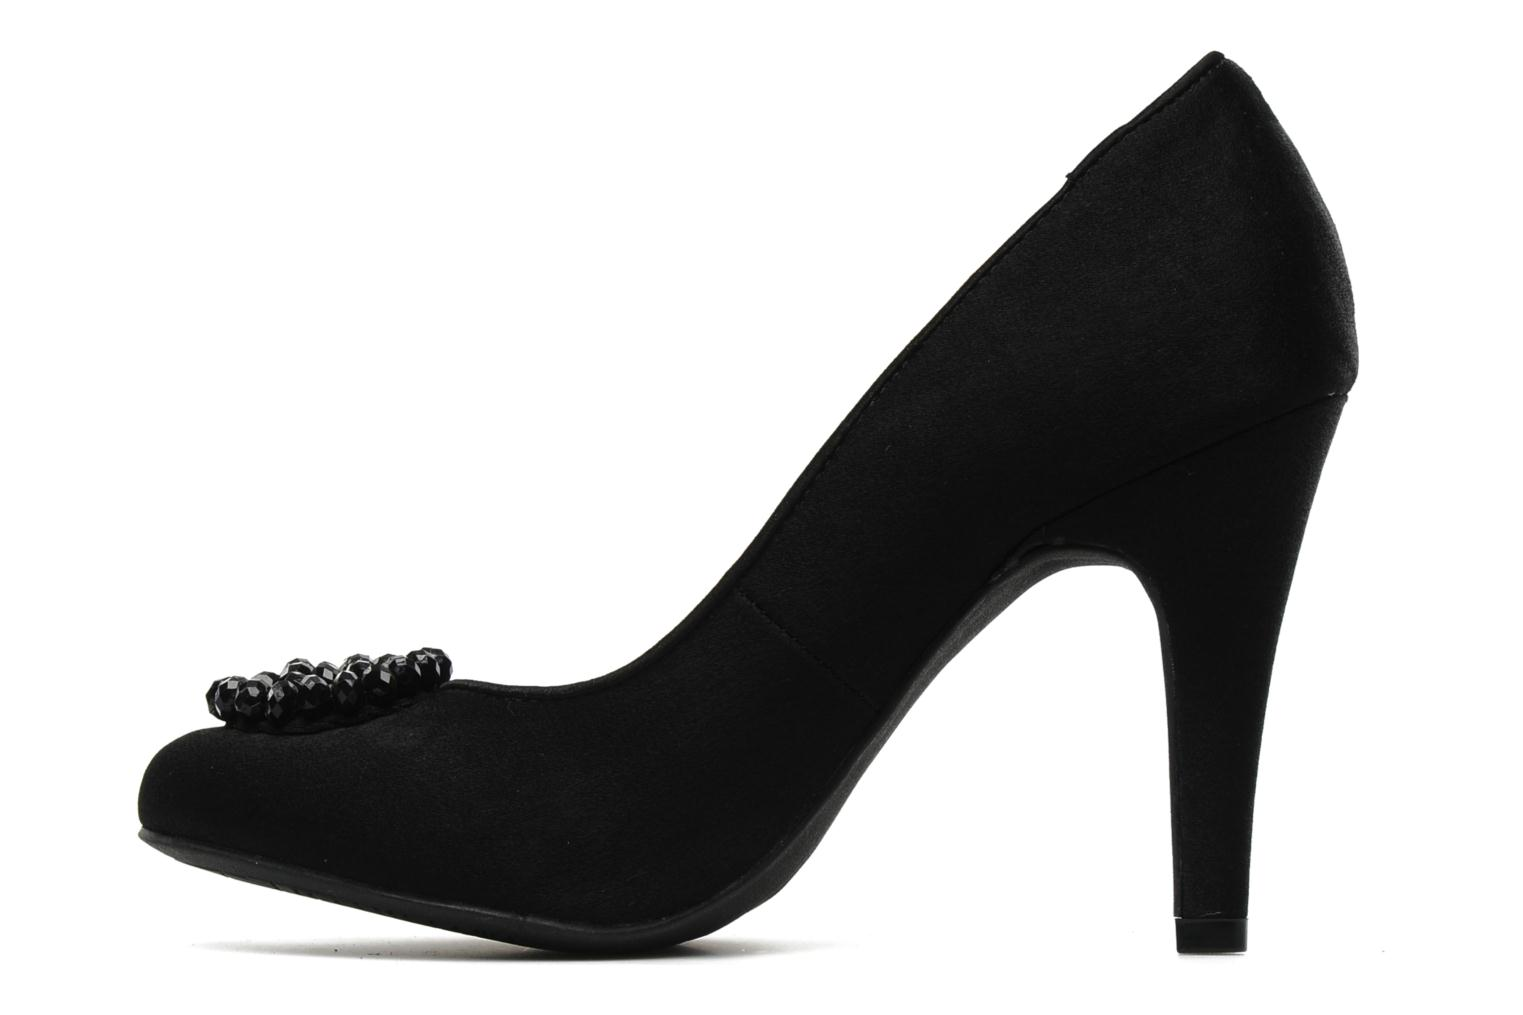 OPHELIA Black Satin